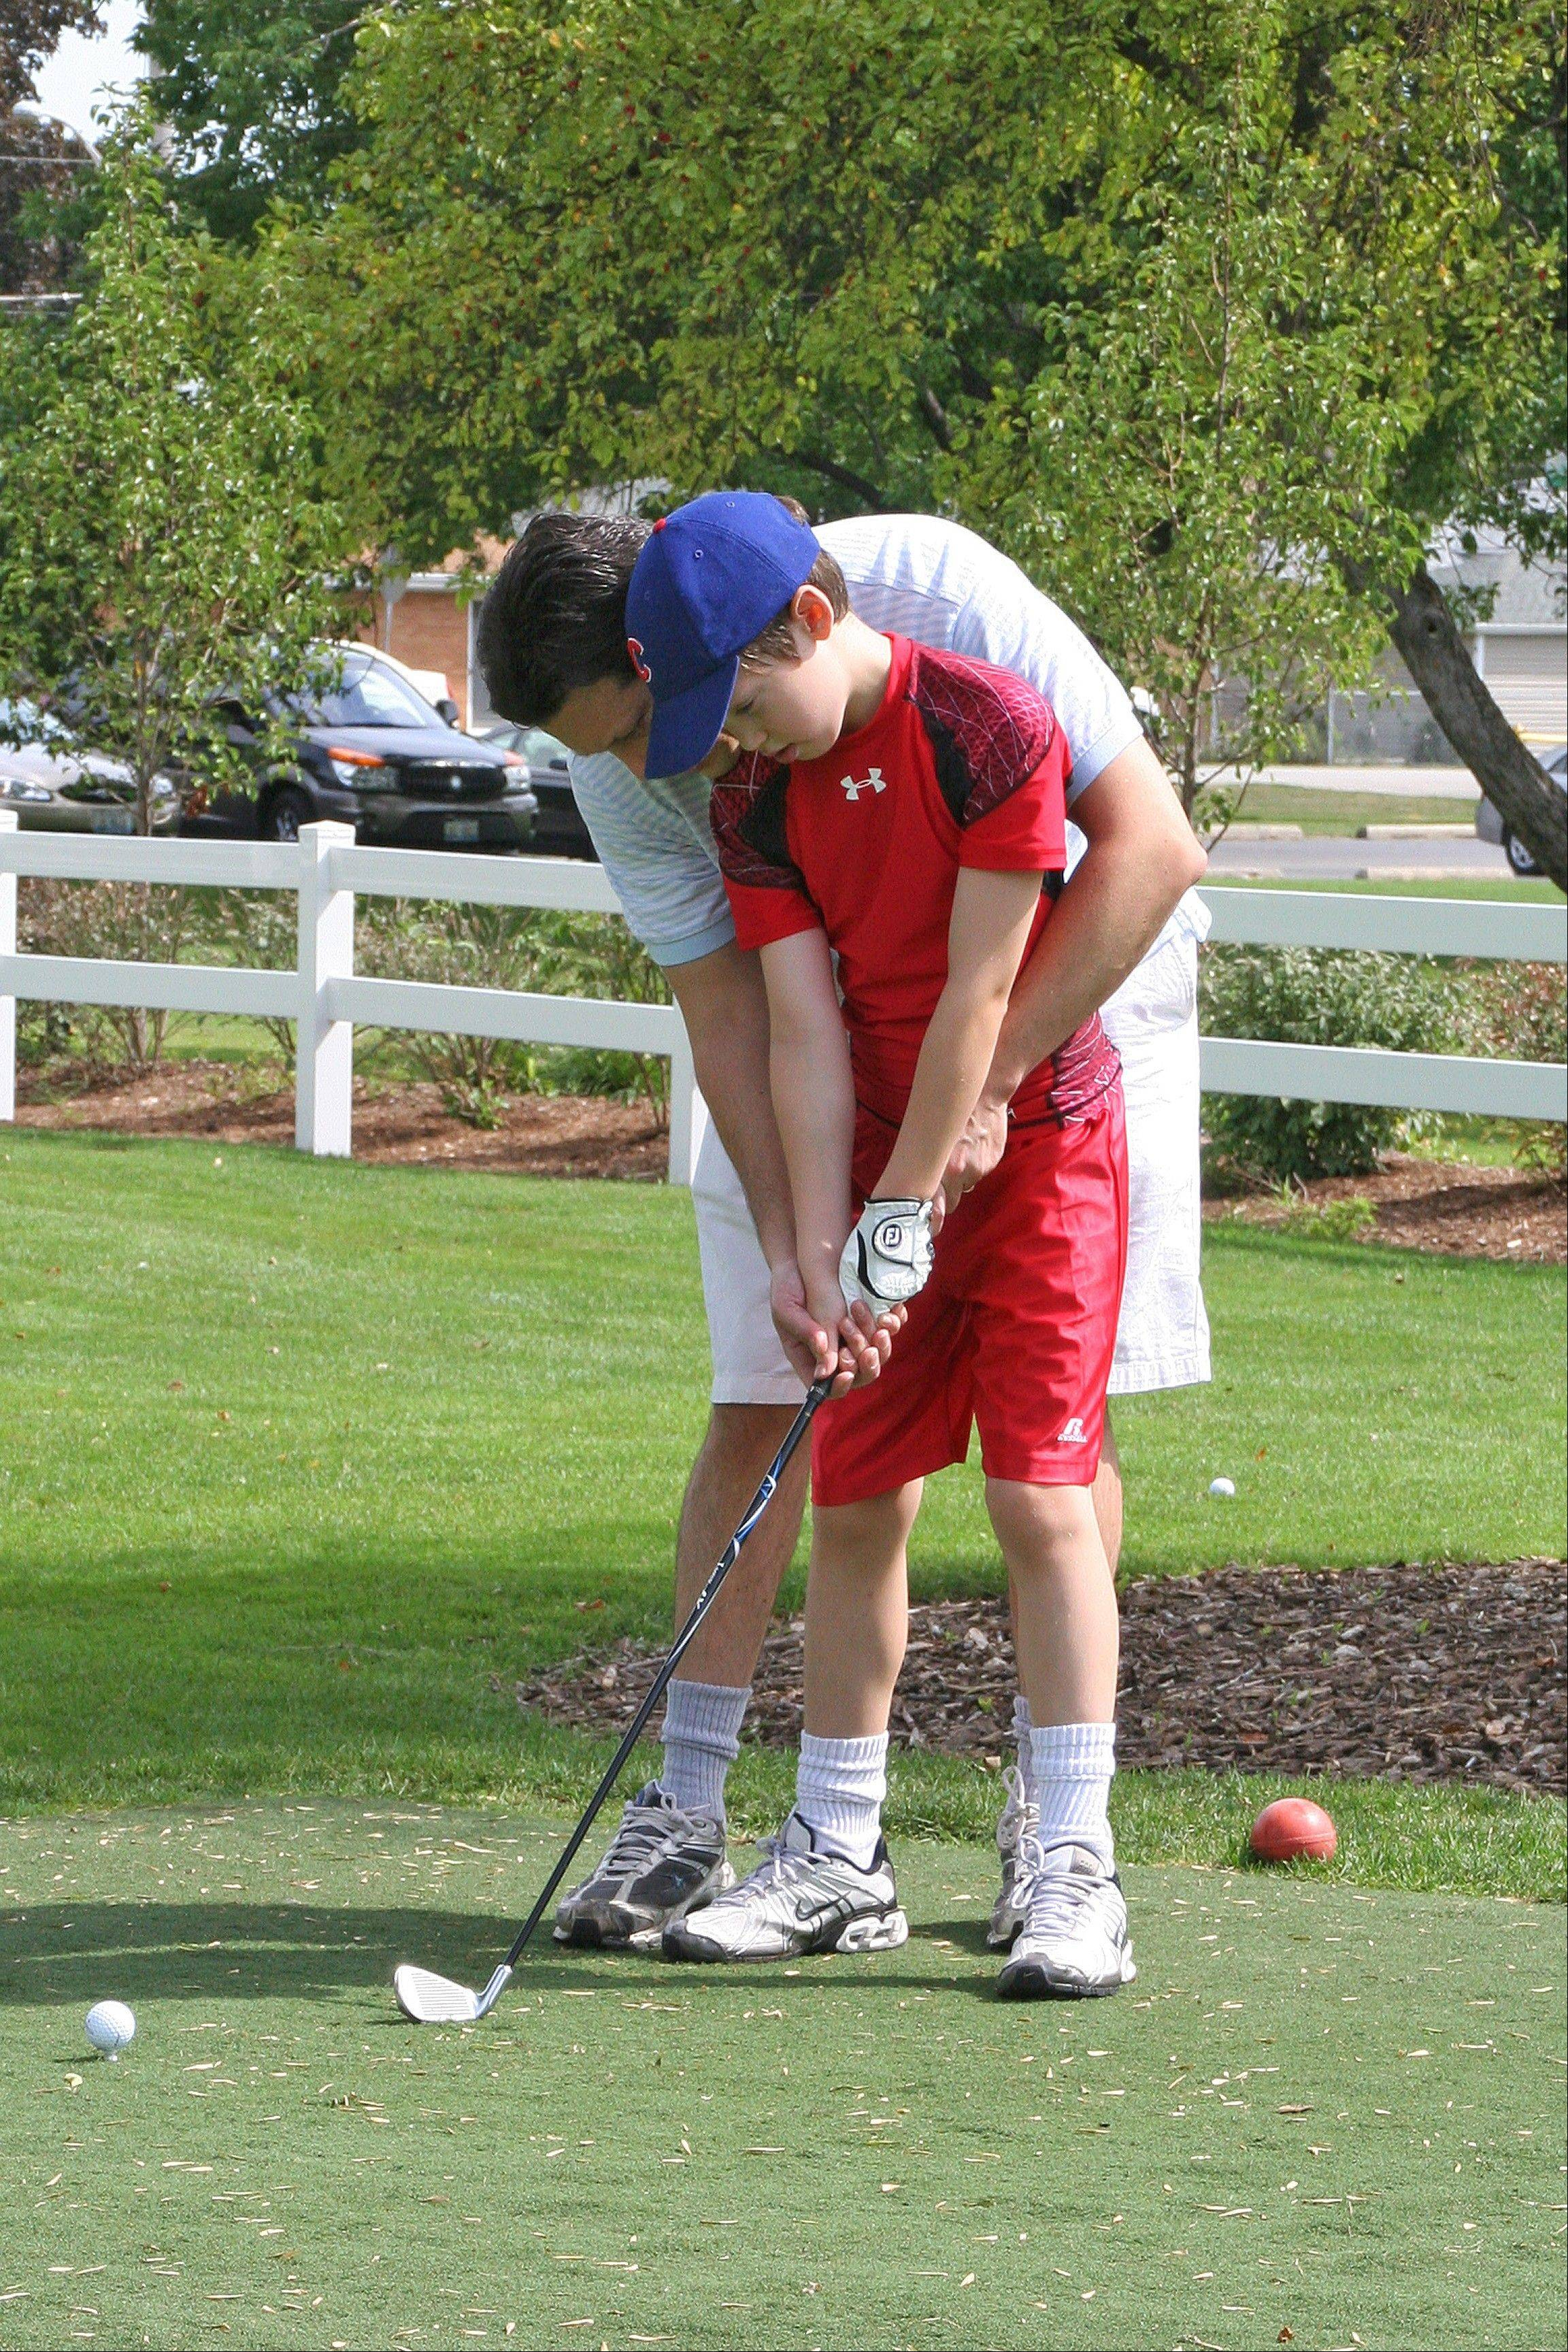 Kids play for $6 a day when with a paying adult at Lake Park Golf Course, Des Plaines, which is opening Friday, April 5.